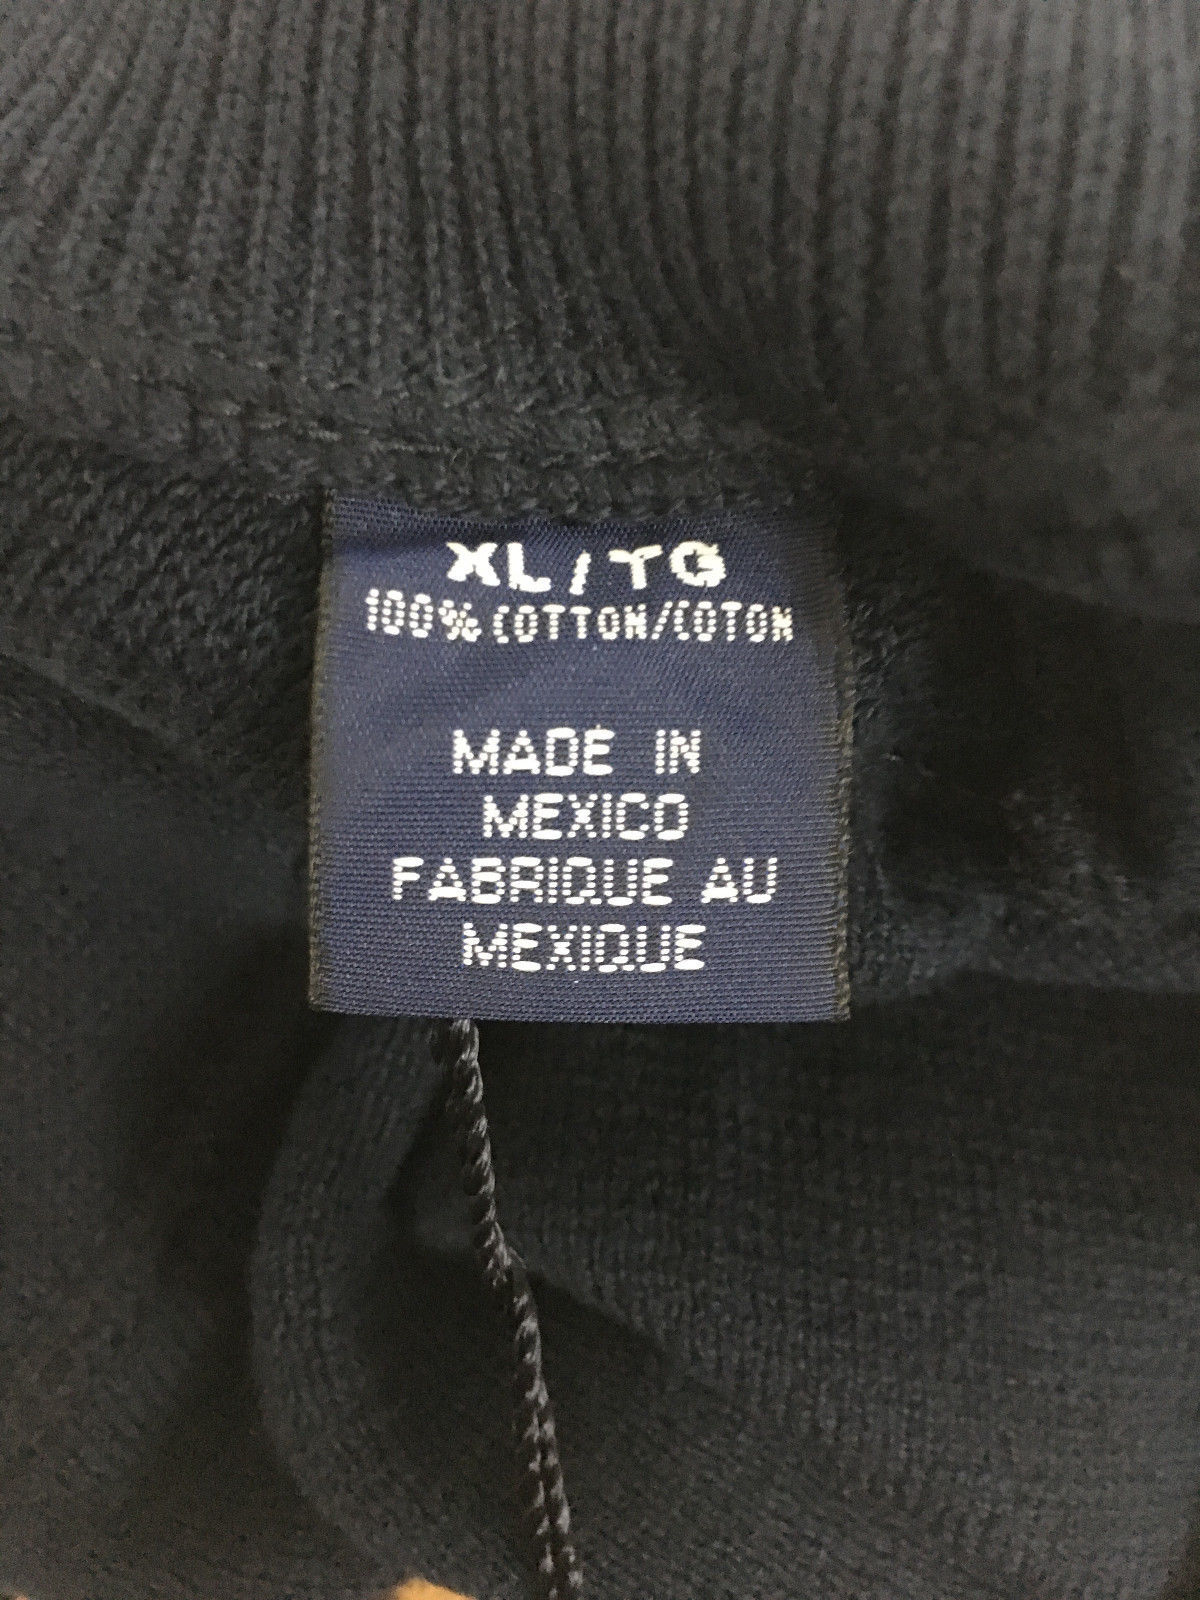 Cutter & Buck Dark Navy Vest RCA Cable Knit New With Tags Men's XL image 6